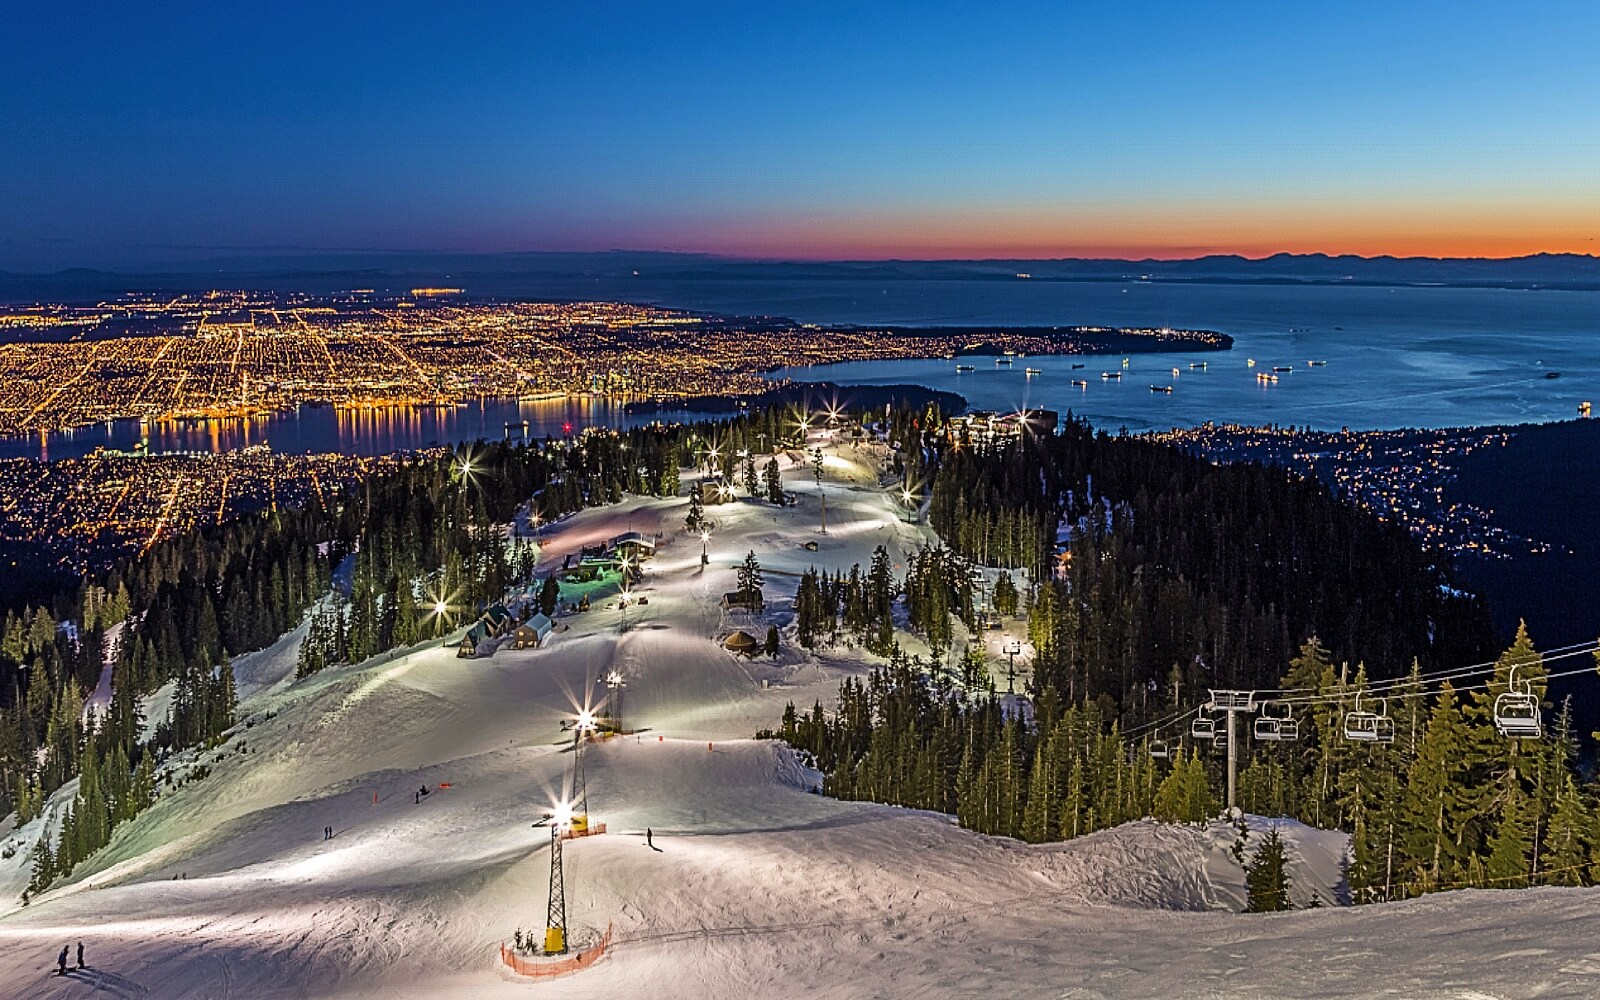 The view from Grouse Mountain at dusk